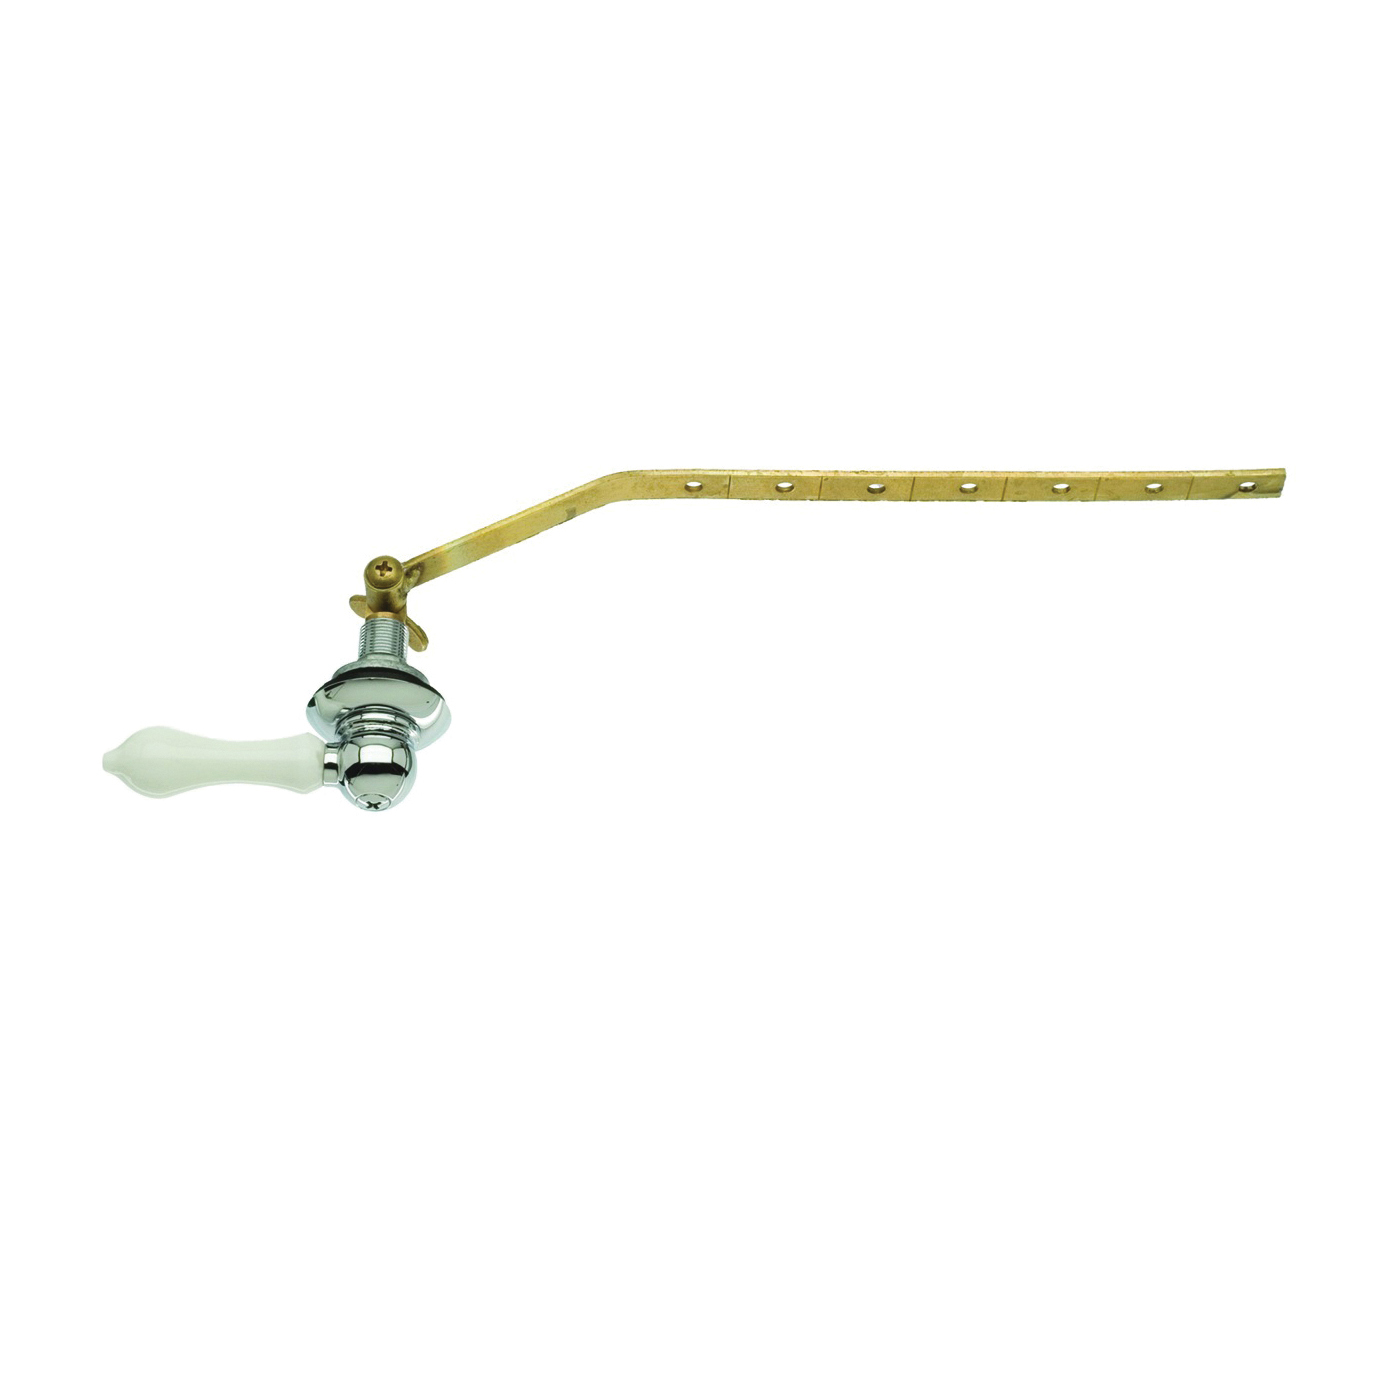 Picture of Danco 89448A Wallplate Toilet Handle, Brass, For: Angled, Front or Side-Mount Toilet Tank